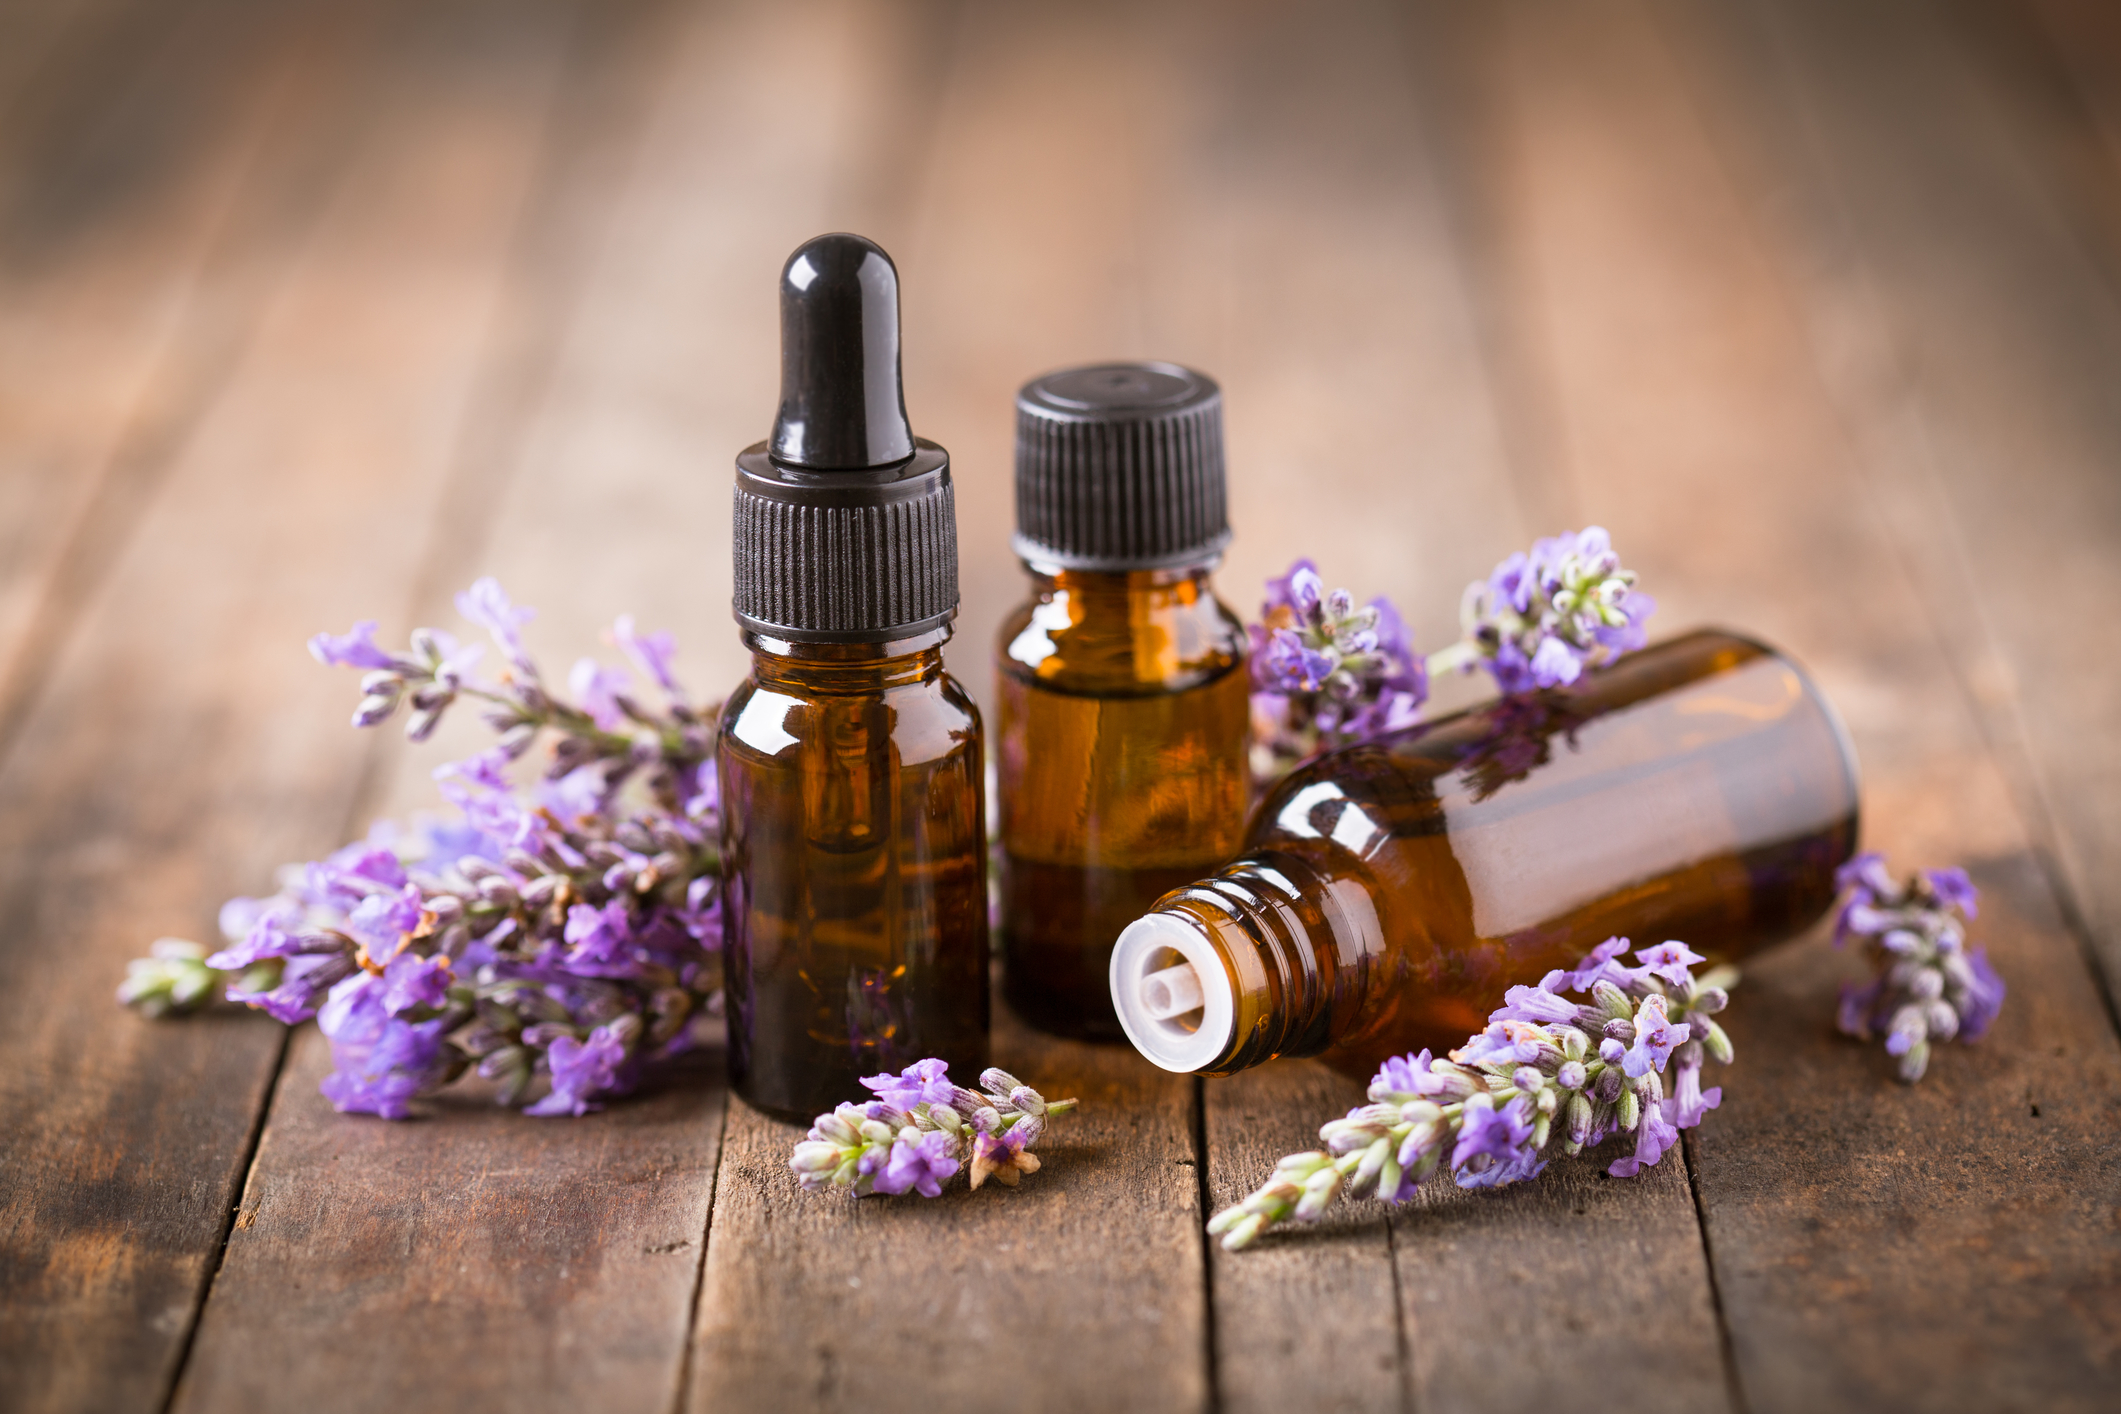 The High Cost Of Lavender And Other Ingredients